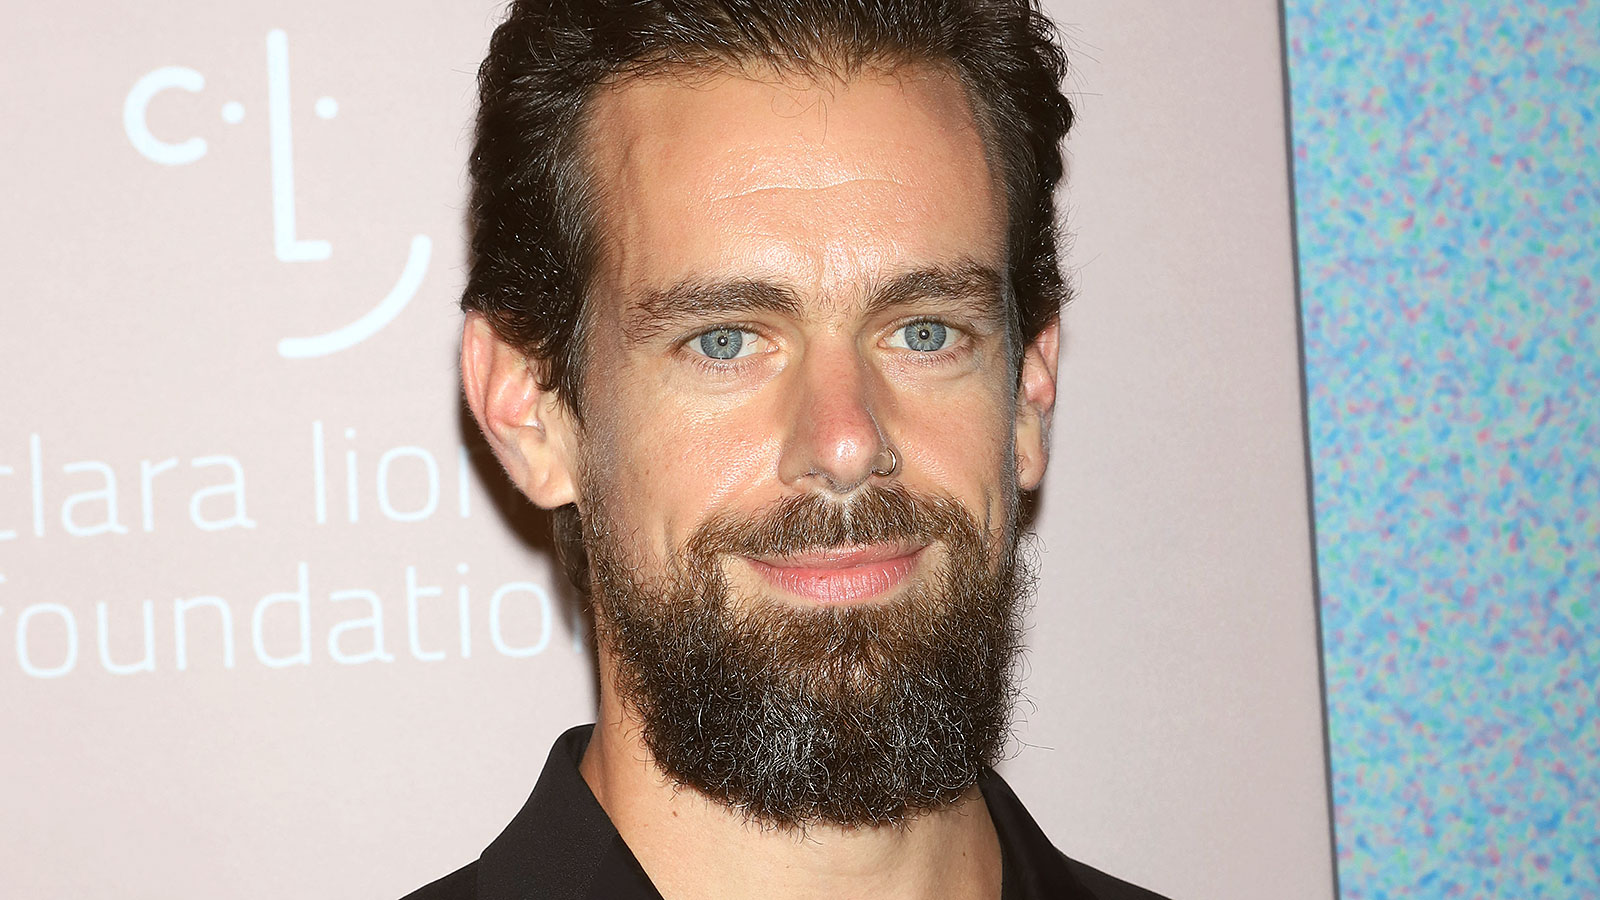 Twitter Ceo Jack Dorsey Has An Extreme Diet And It Reflects Society